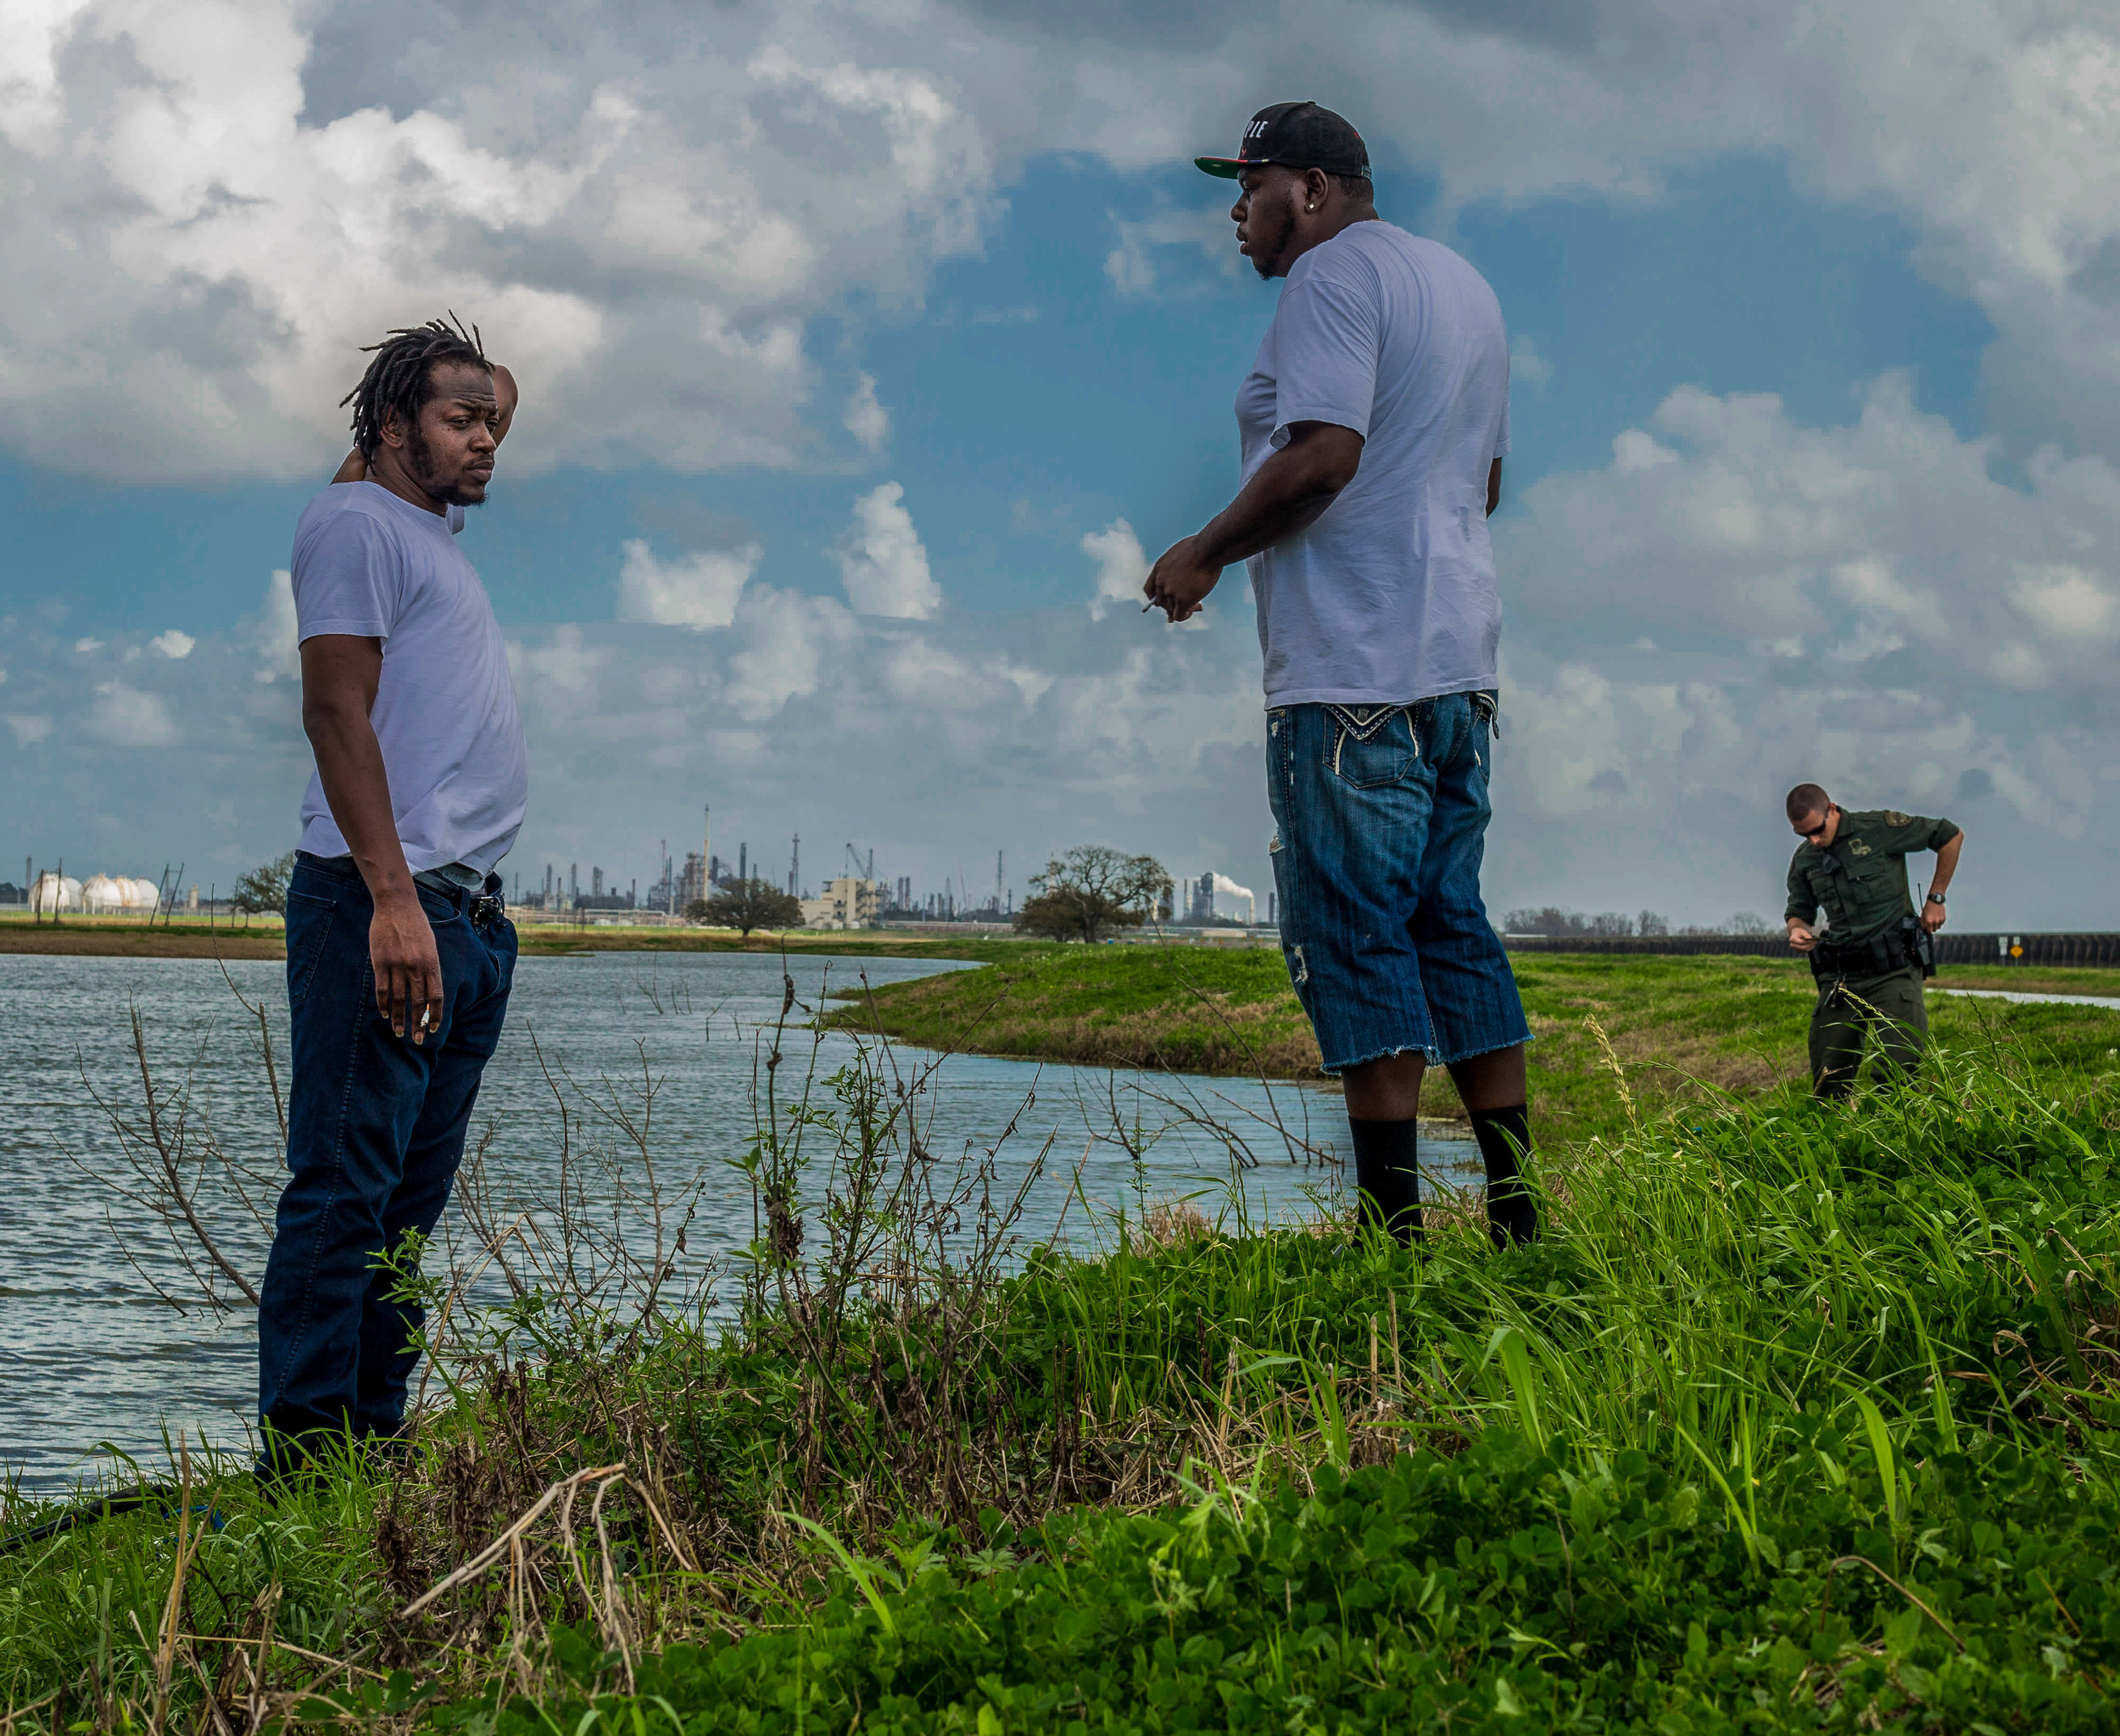 Robert and Chris were ticketed for not having their fishing license on them for the third time this year. The little fishing hole was rimmed with dead turtles, a causation of oil factory leaching.